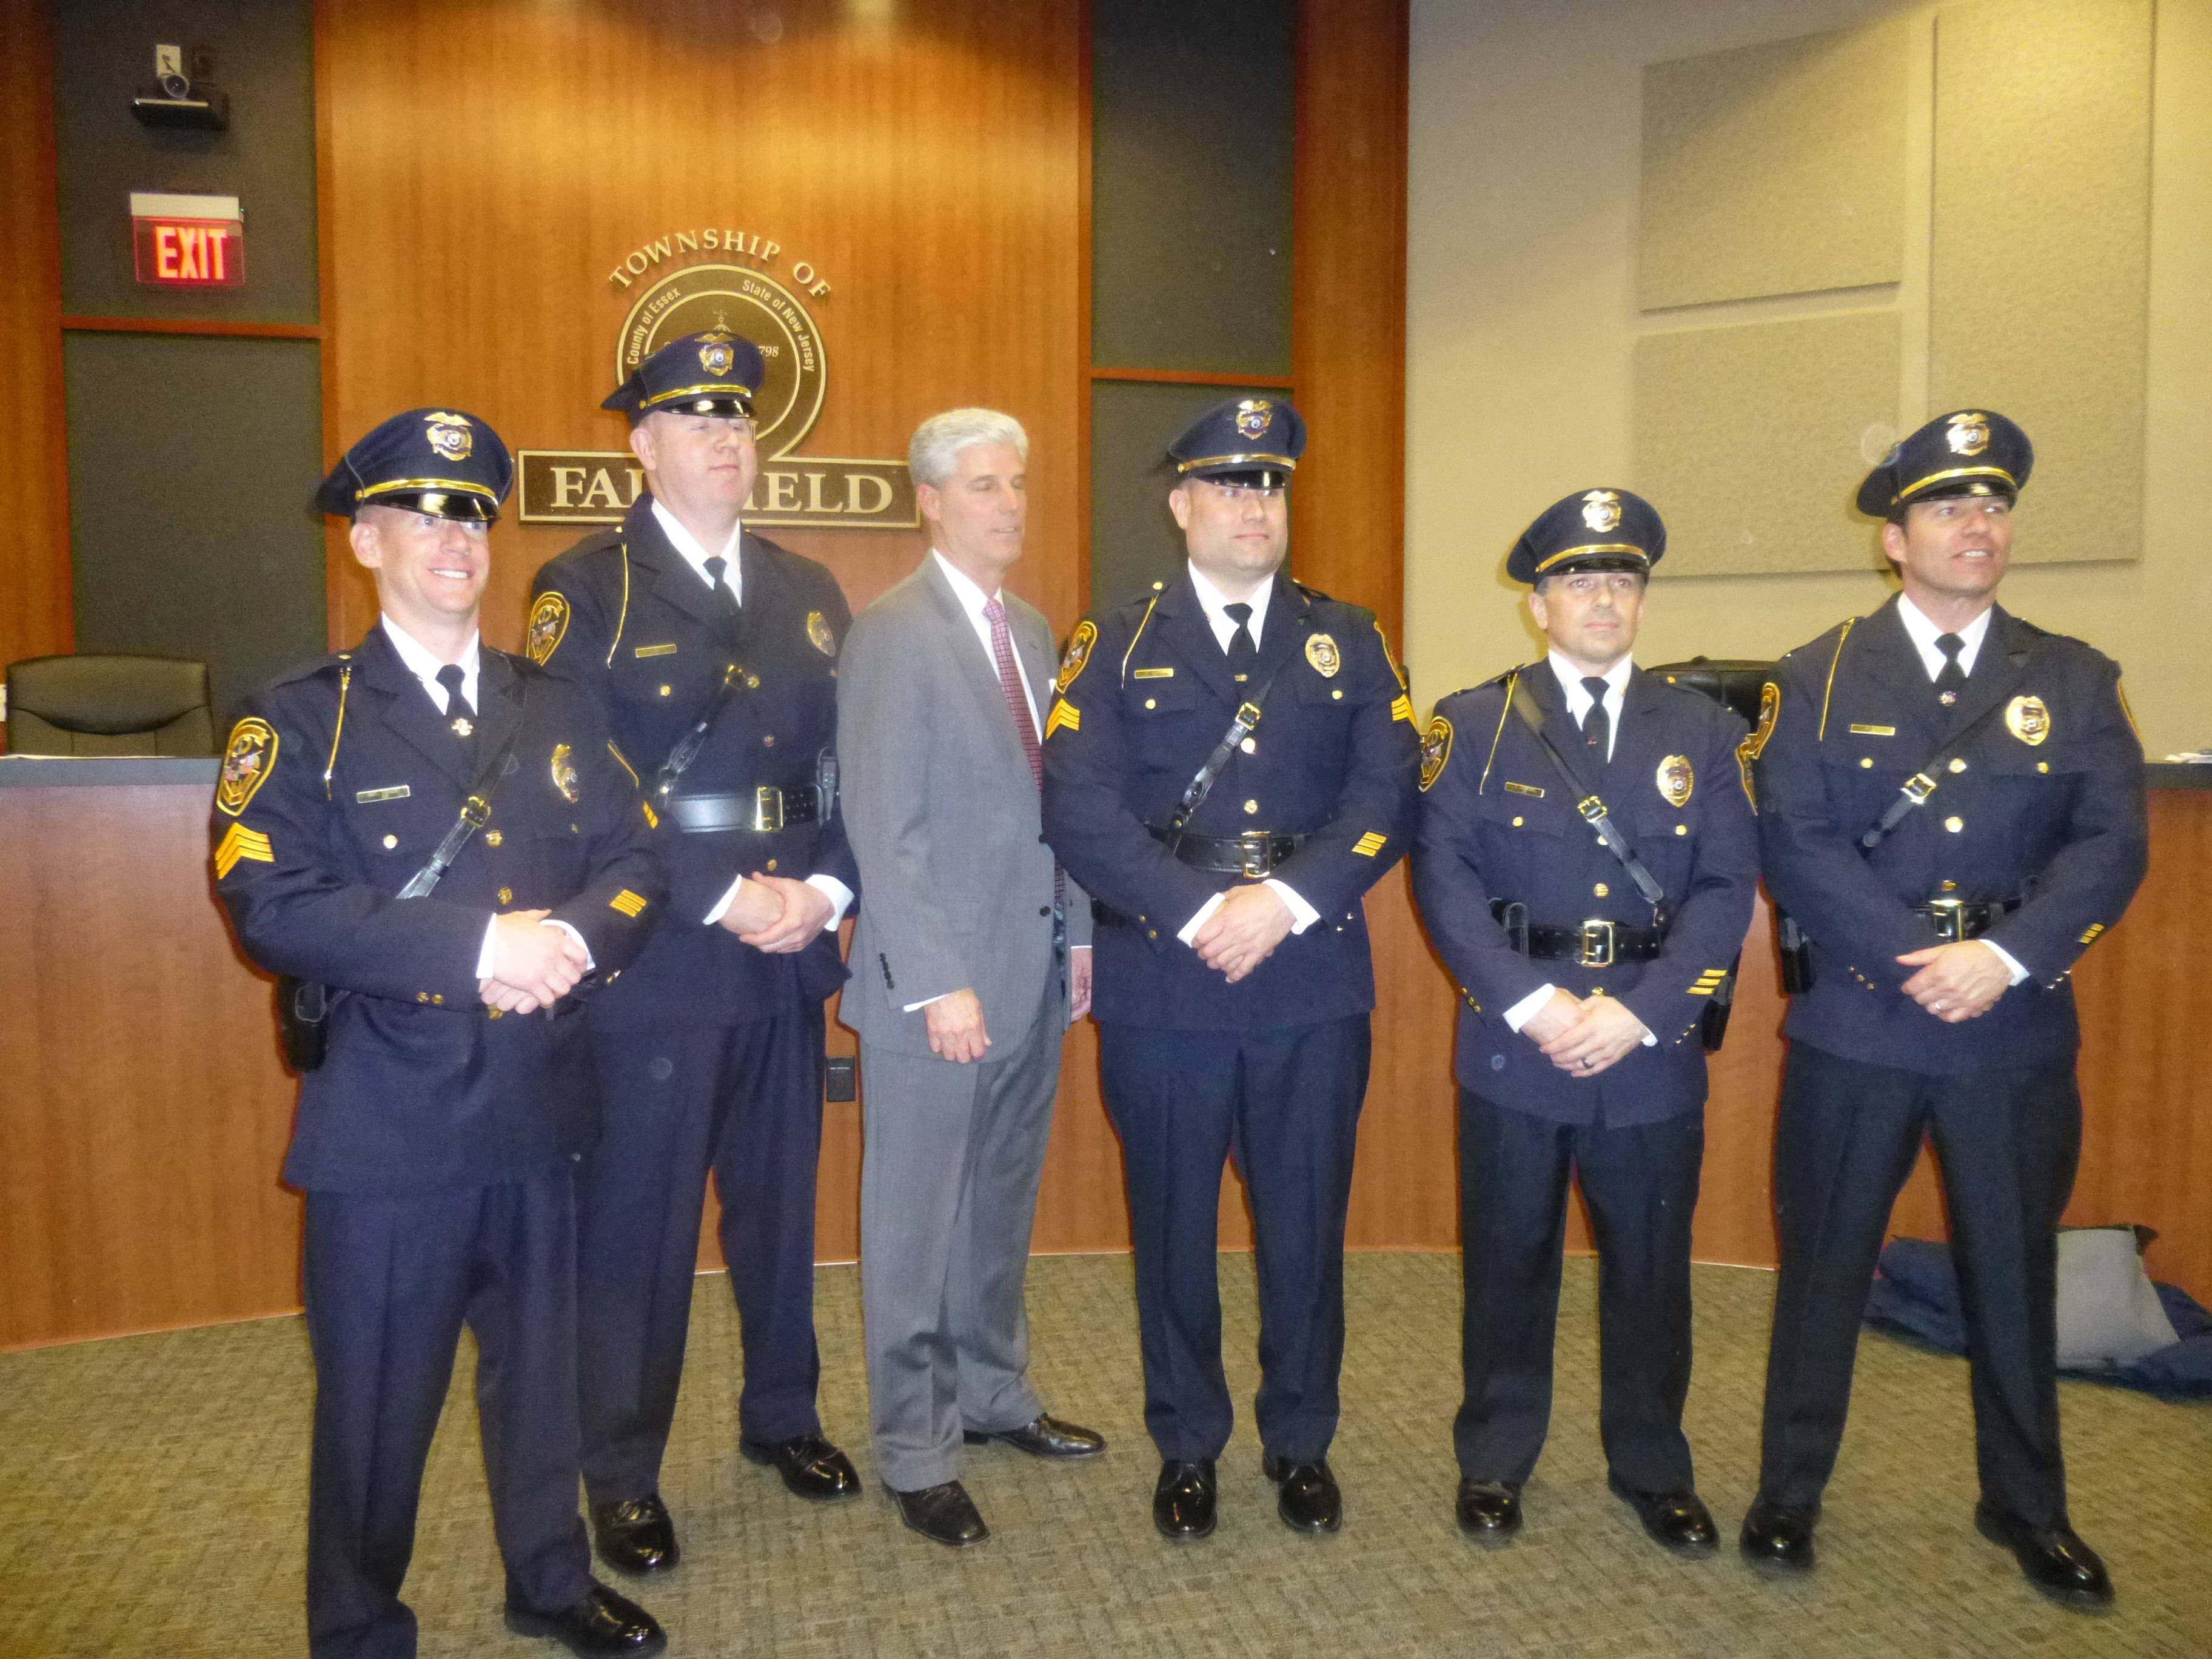 Township of Fairfield Promotes Five Police Officers | TAPinto